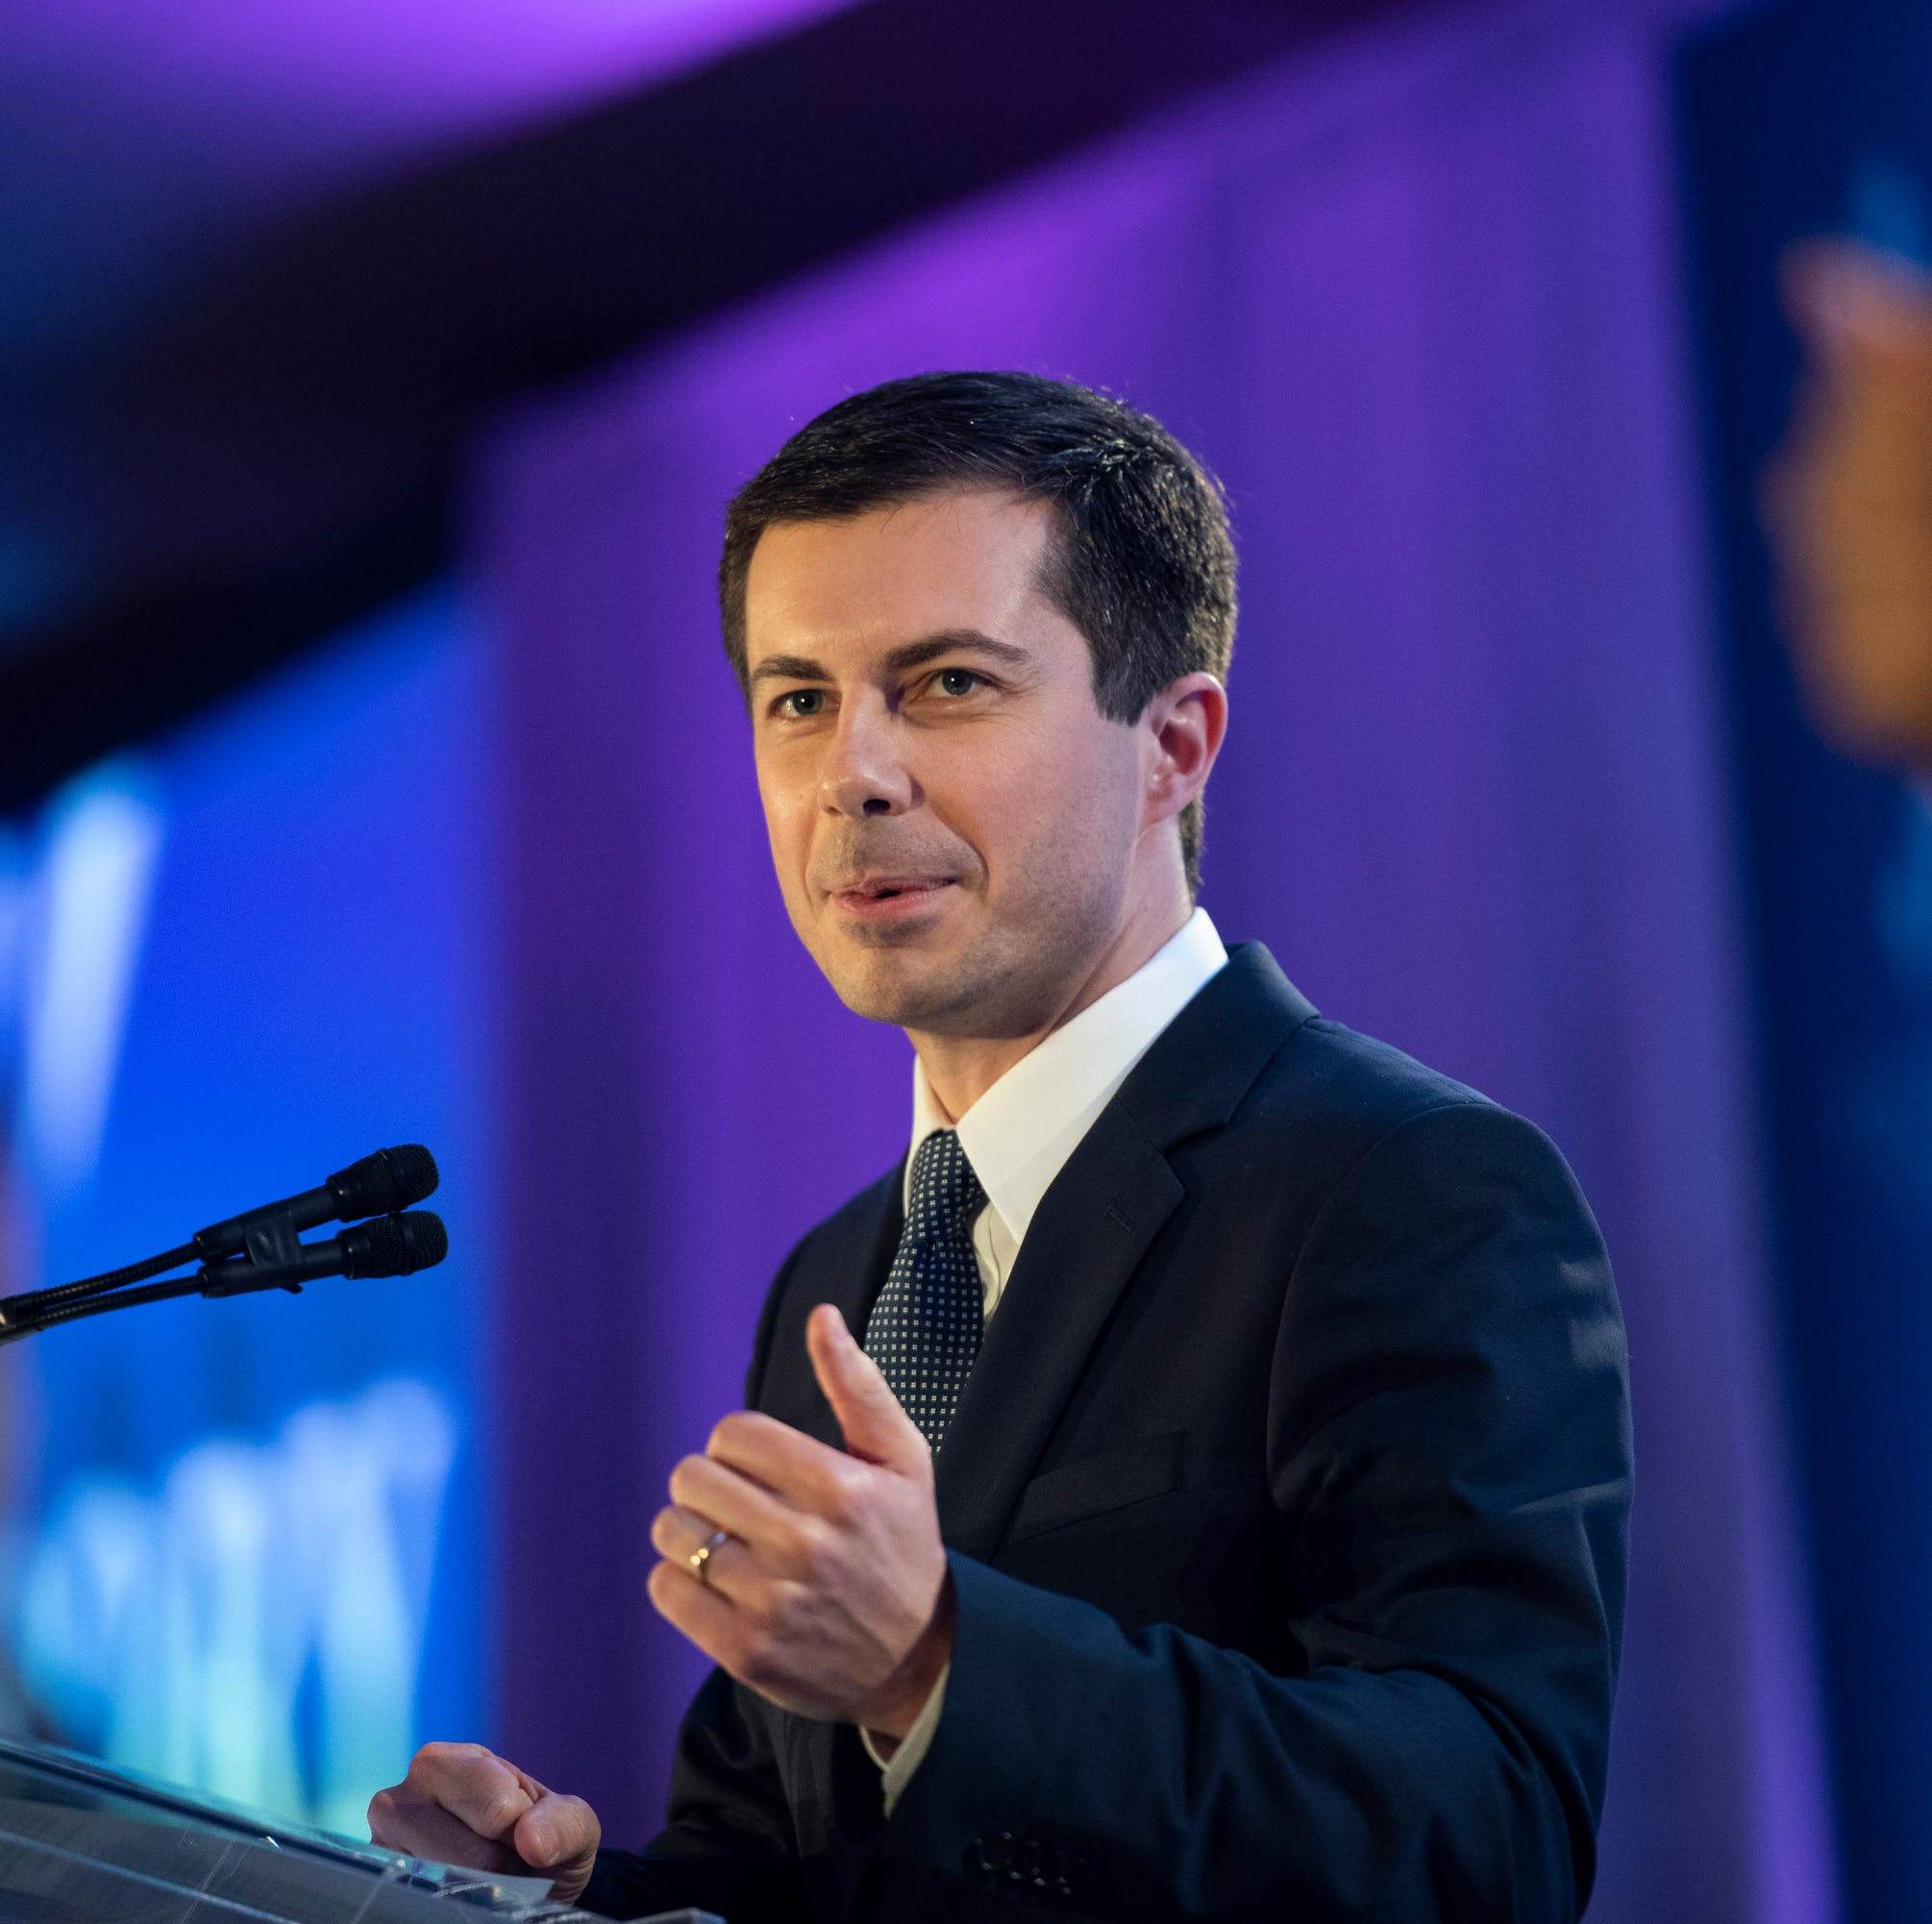 Buttigieg to Pence: If you have a problem with who I am, your quarrel is with my Creator